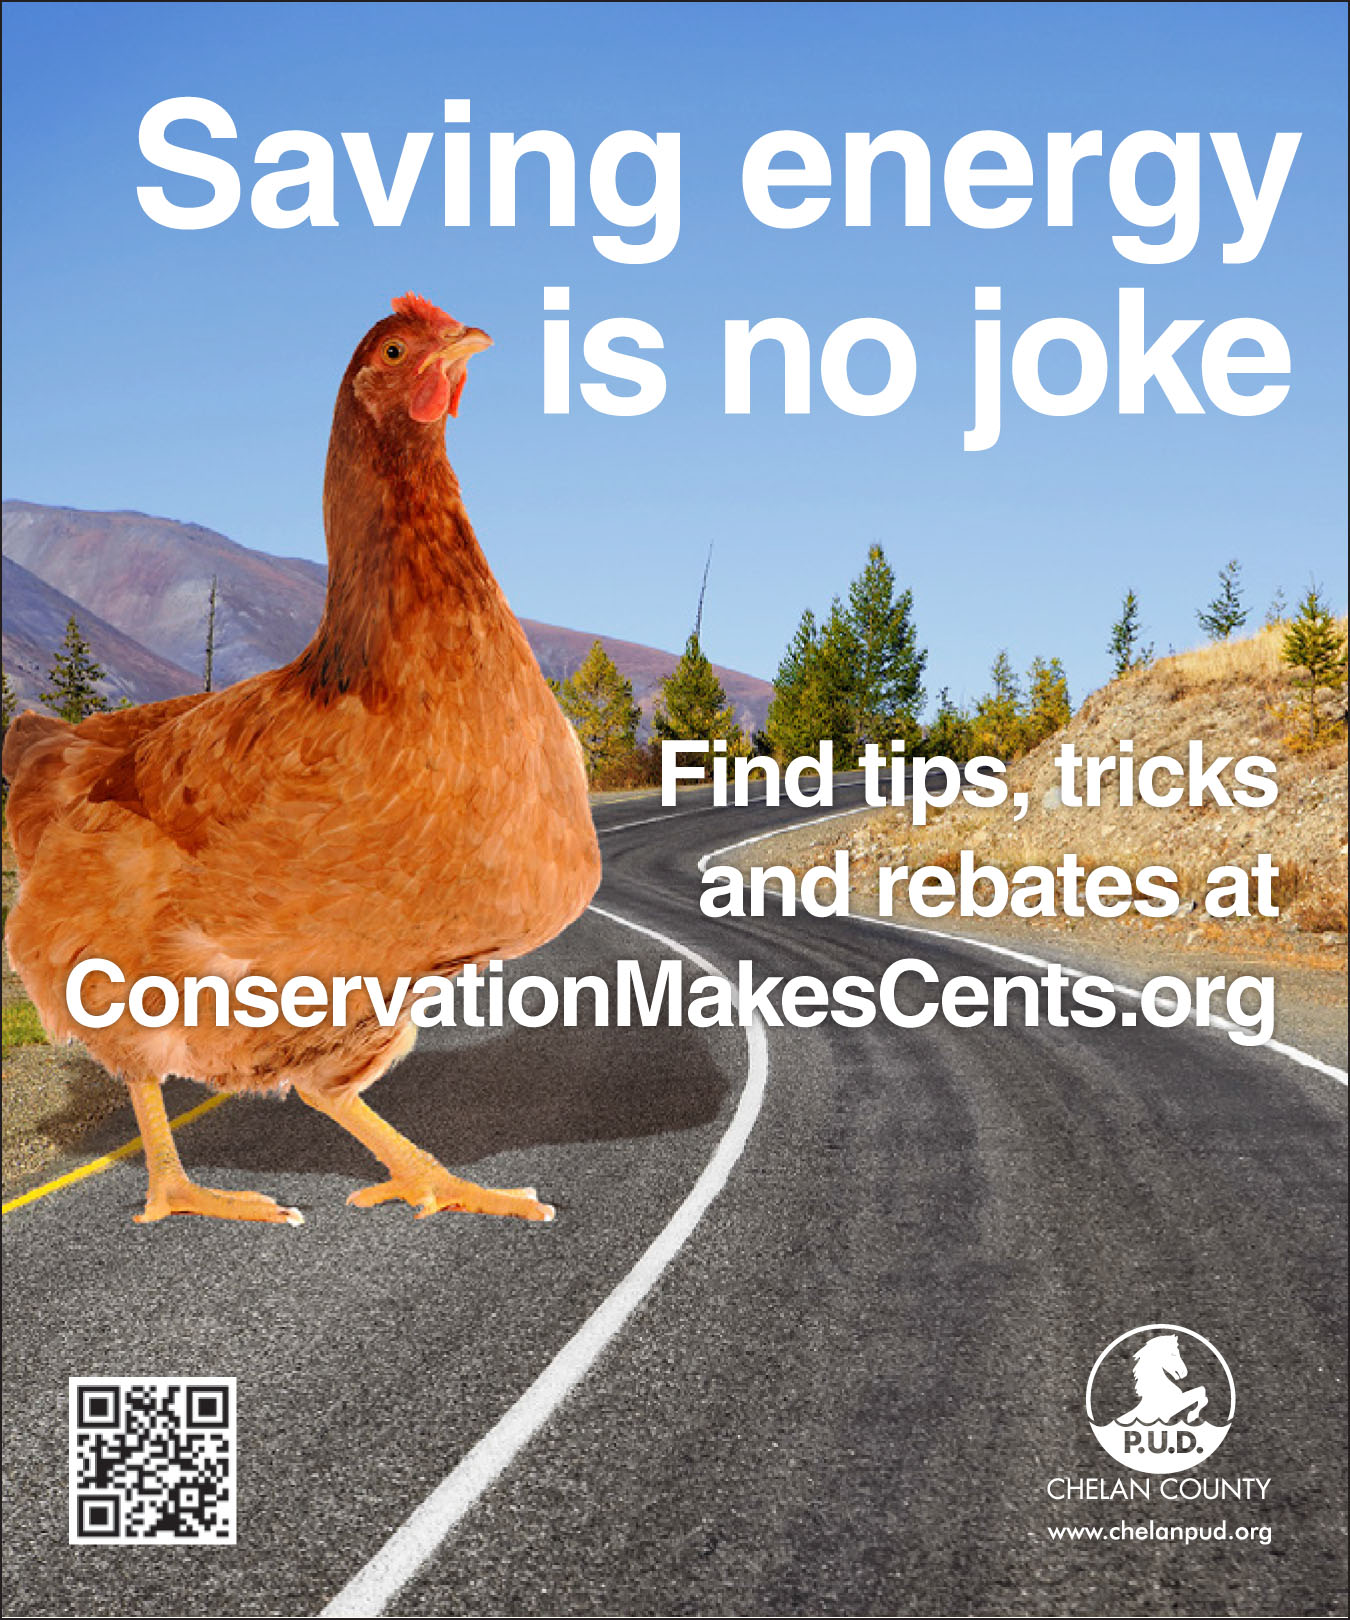 Photo of ad featuring a chicken crossing the road.